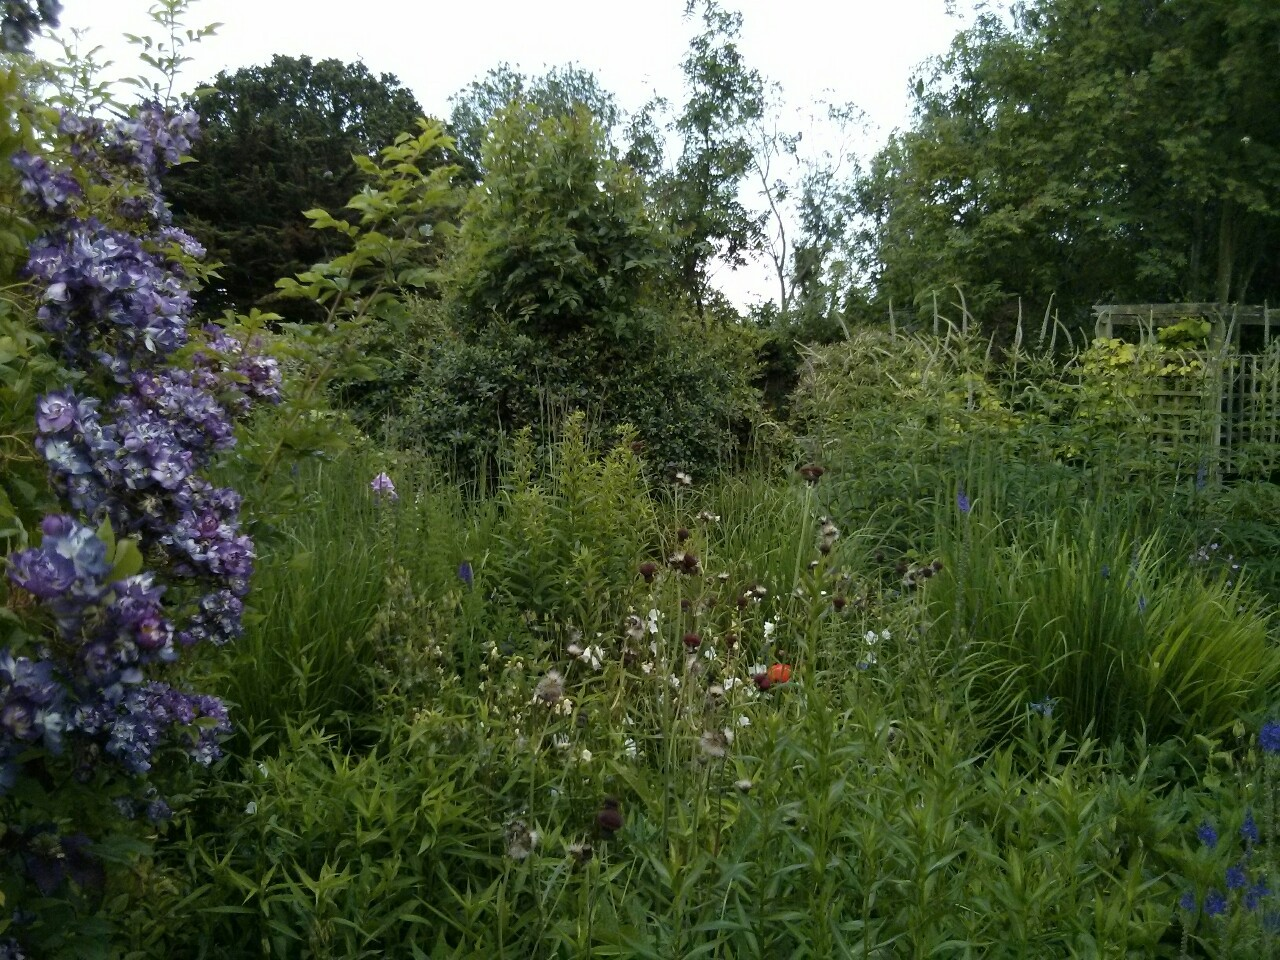 Just noticed I have not posted any photos of the garden recently; this is the same view as the photo posted a month ago on 14th May; this evening, however, is overcast and grey.